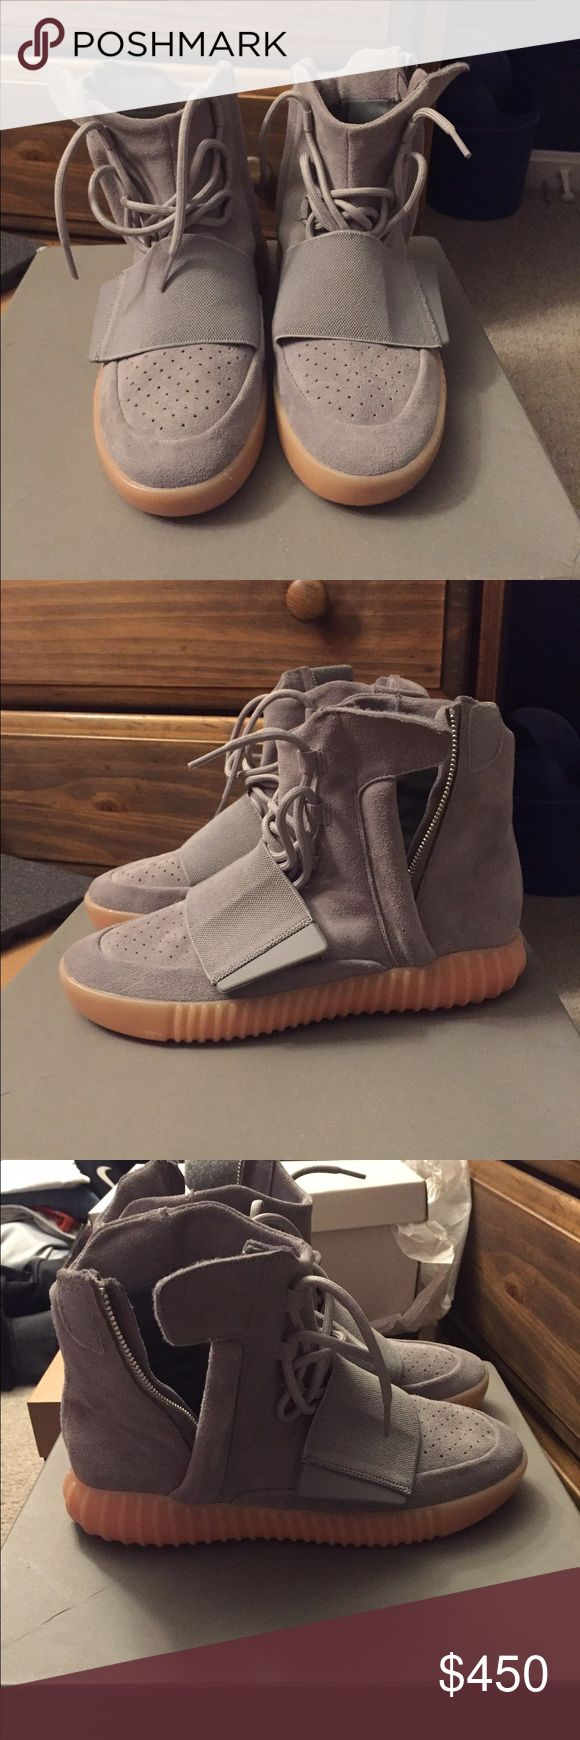 Yeezy 750 Boost Size 8.5 yeezy 750 Boost never worn brand new. Great looking shoes! Adidas Shoes Athletic Shoes